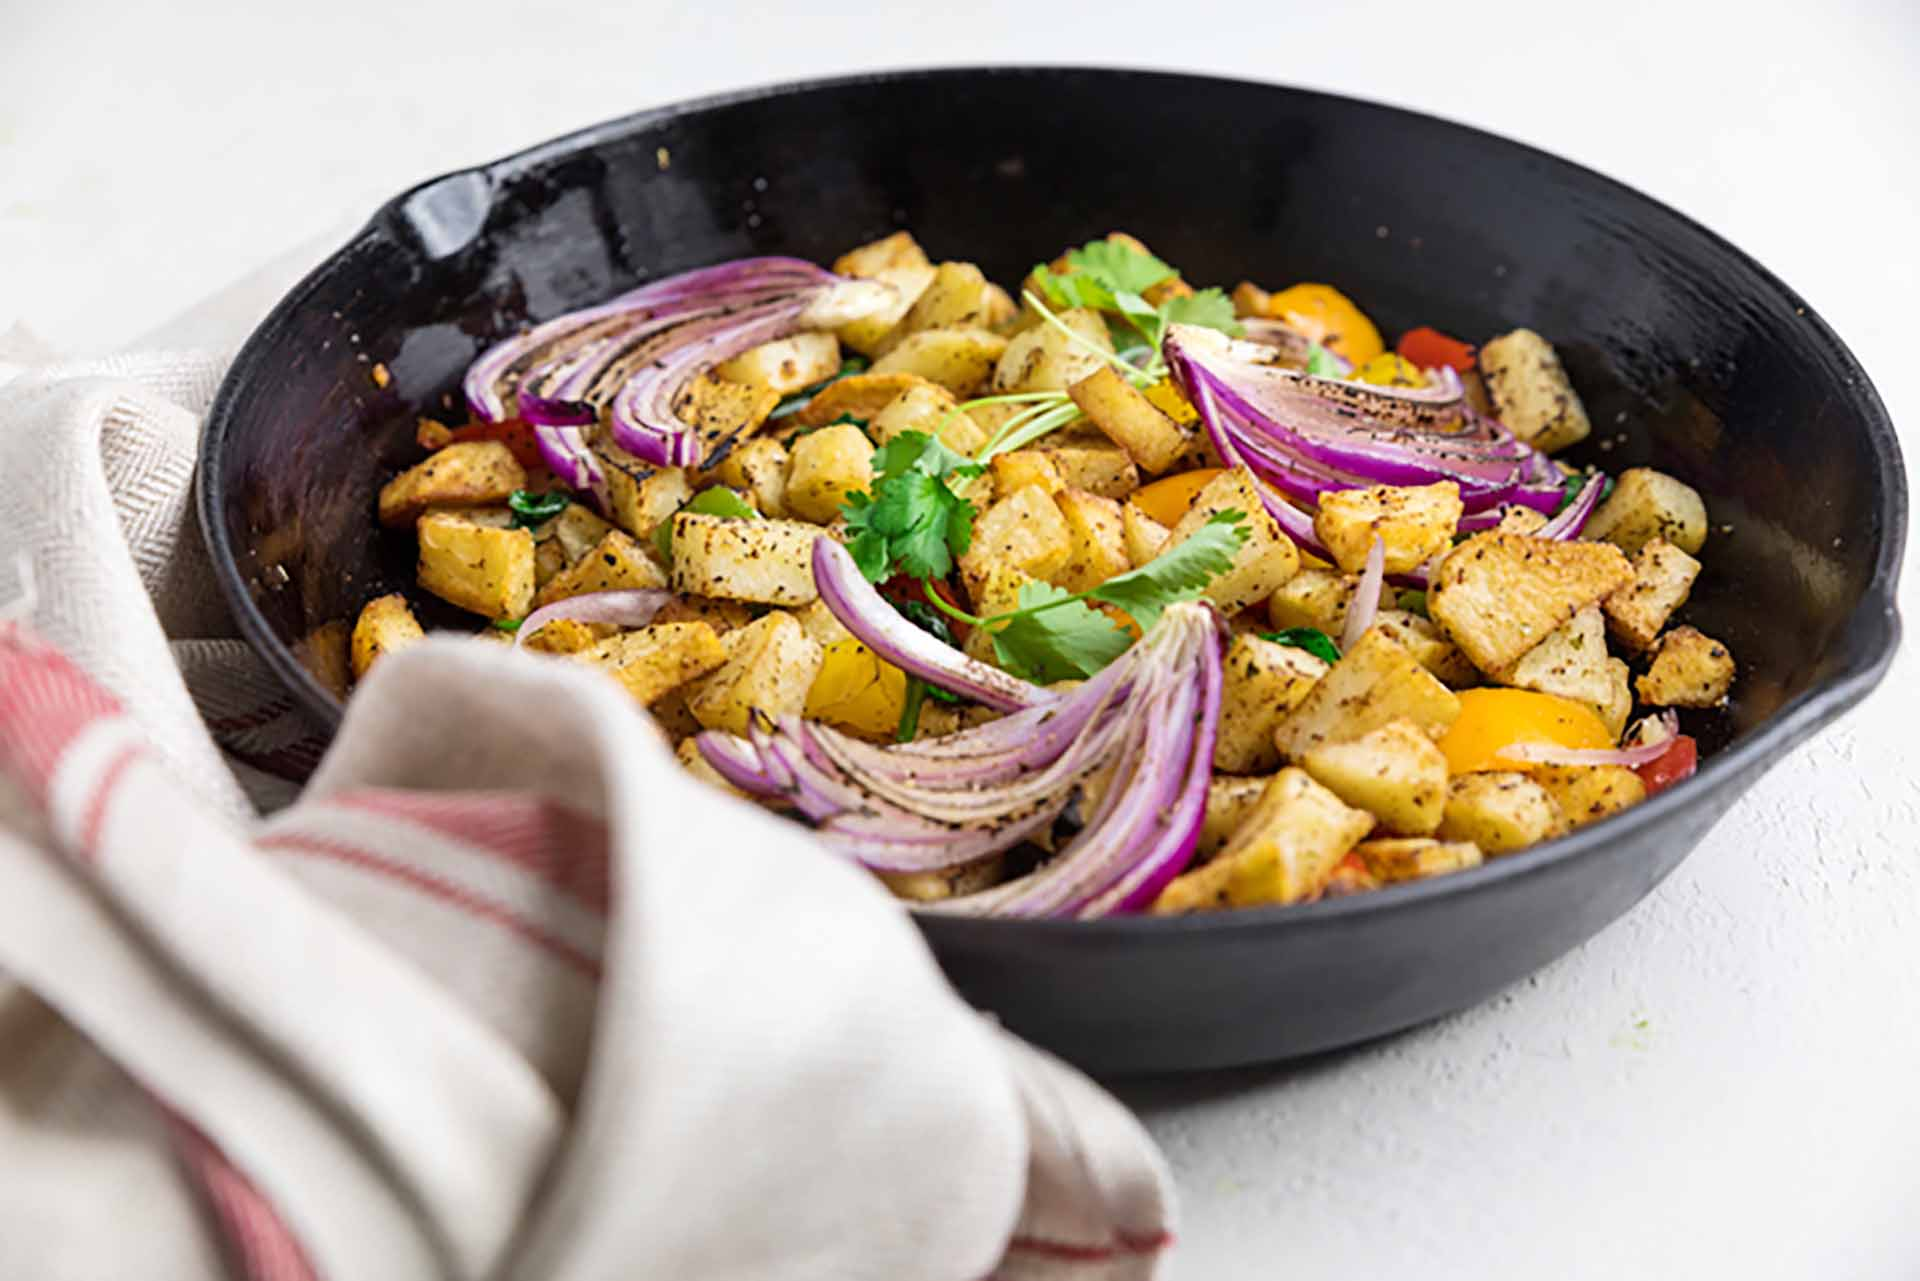 An iron skillet filled with roasted potatoes and vegetables sitting on a white countertop.